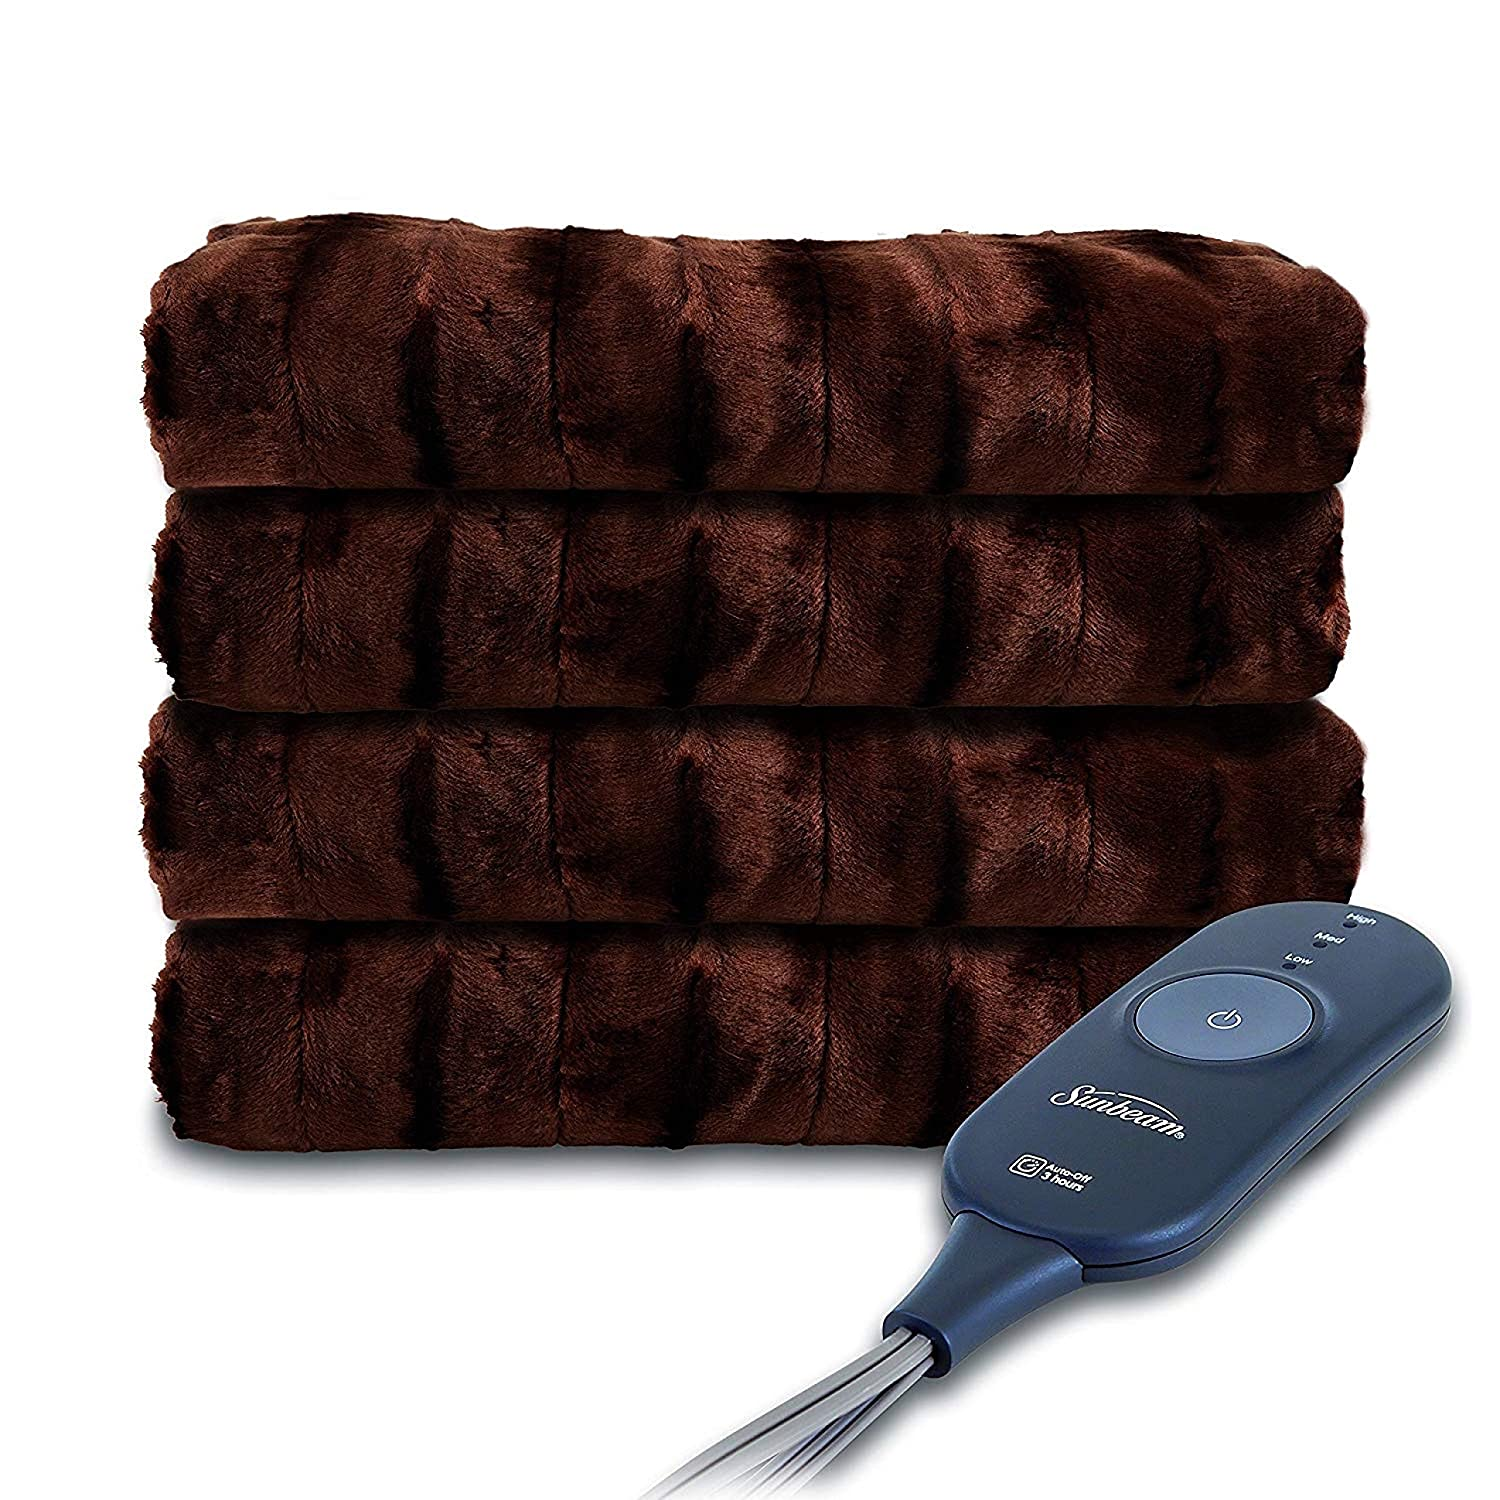 Sunbeam Heated Throw Blanket | Faux Fur, 3 Heat Settings, Walnut